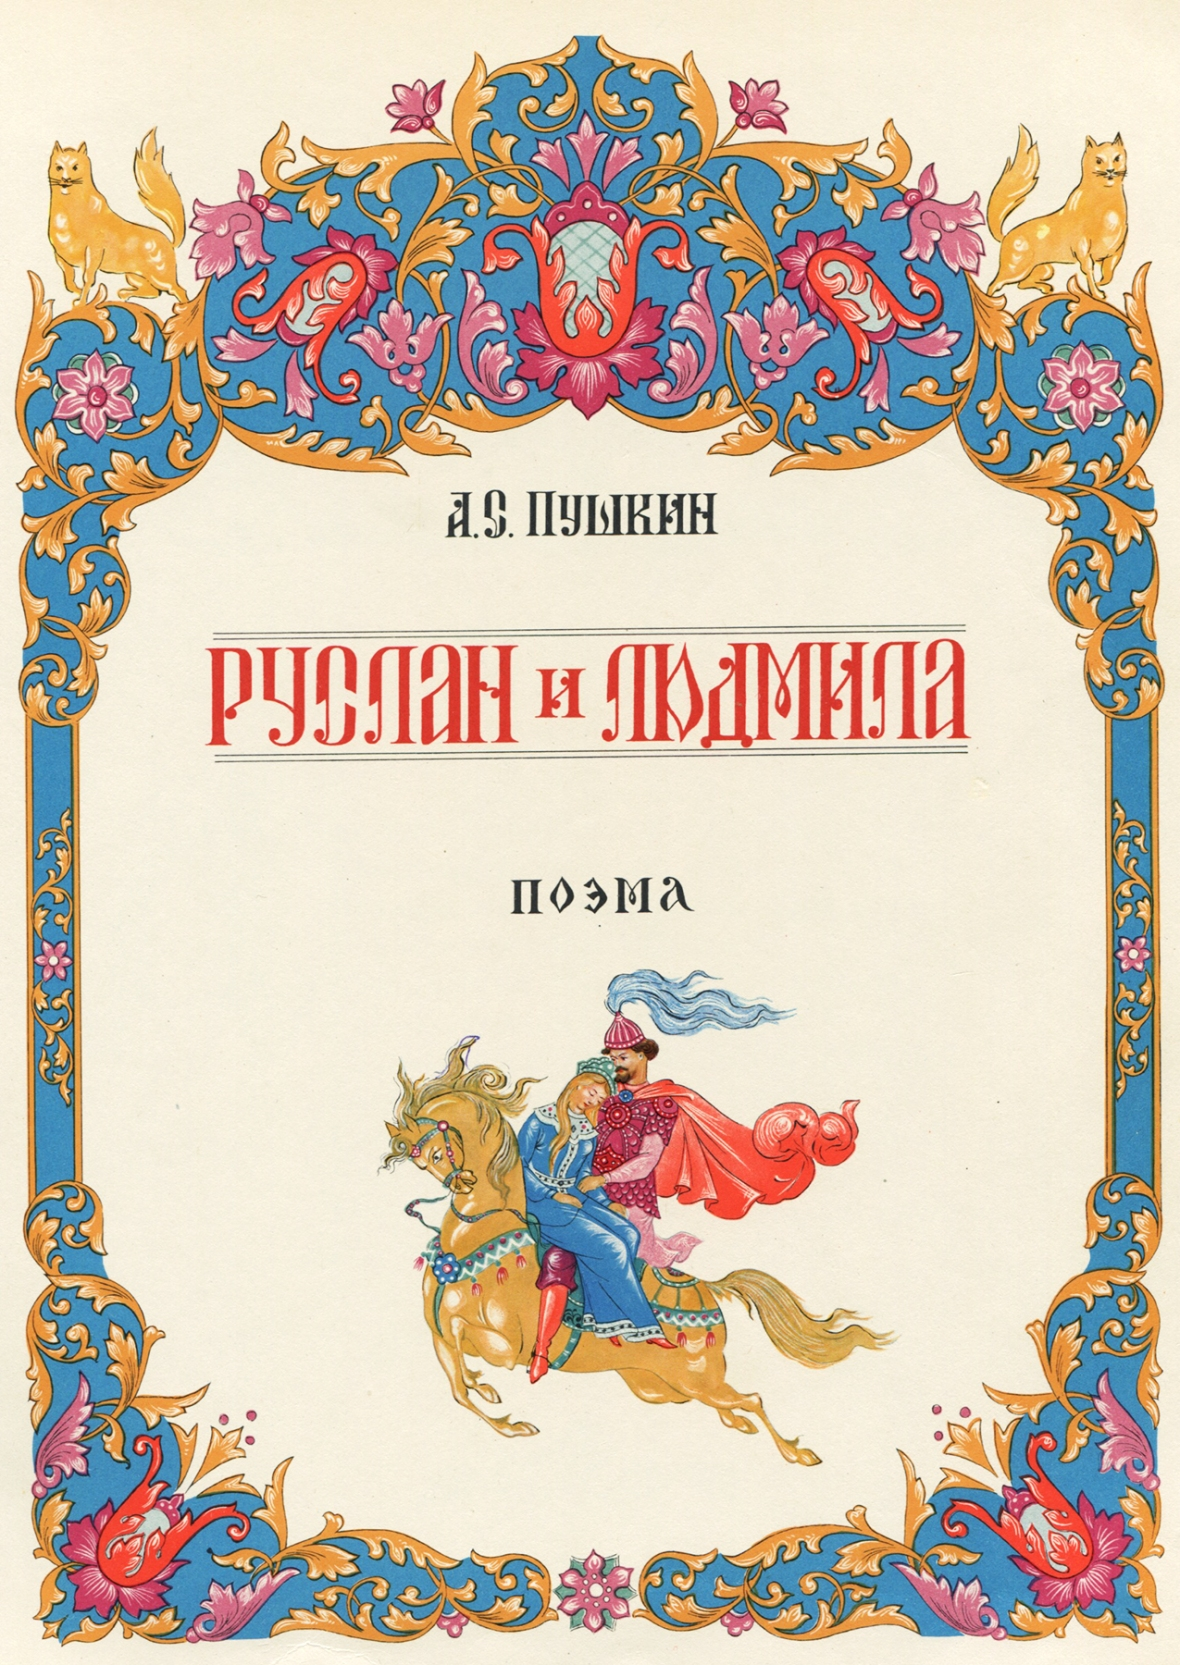 Ruslan and Lyudmila Illustration